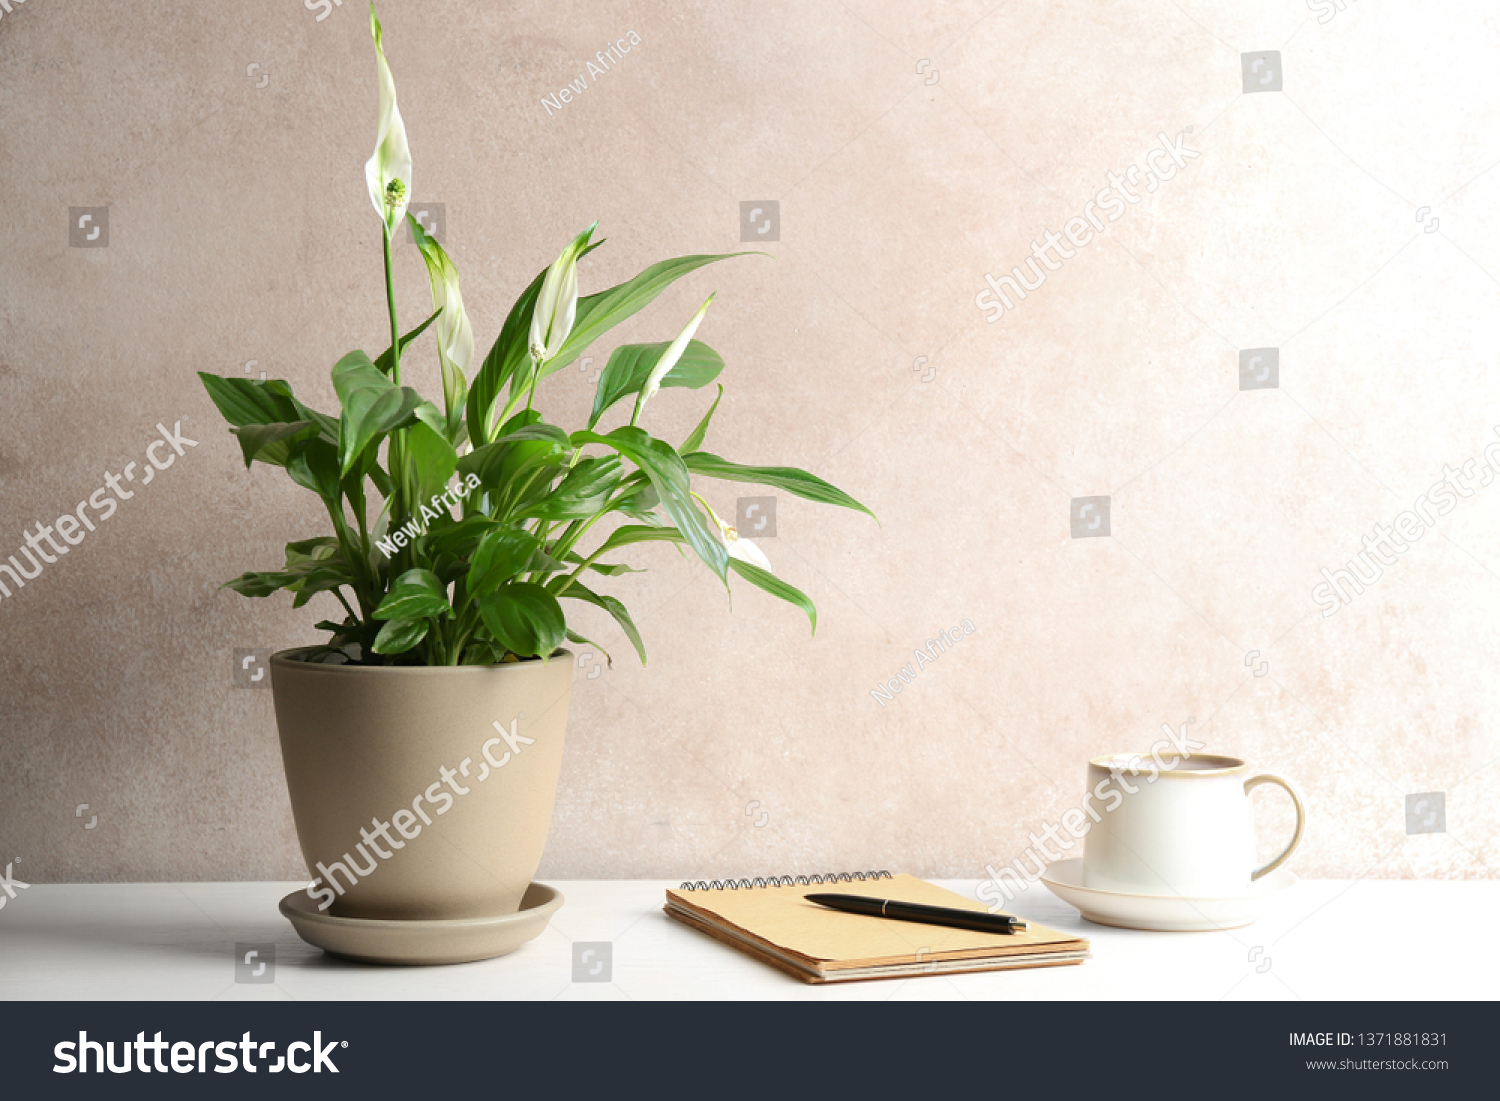 Composition with peace lily, notebook and cup on table against color wall. Space for text #1371881831